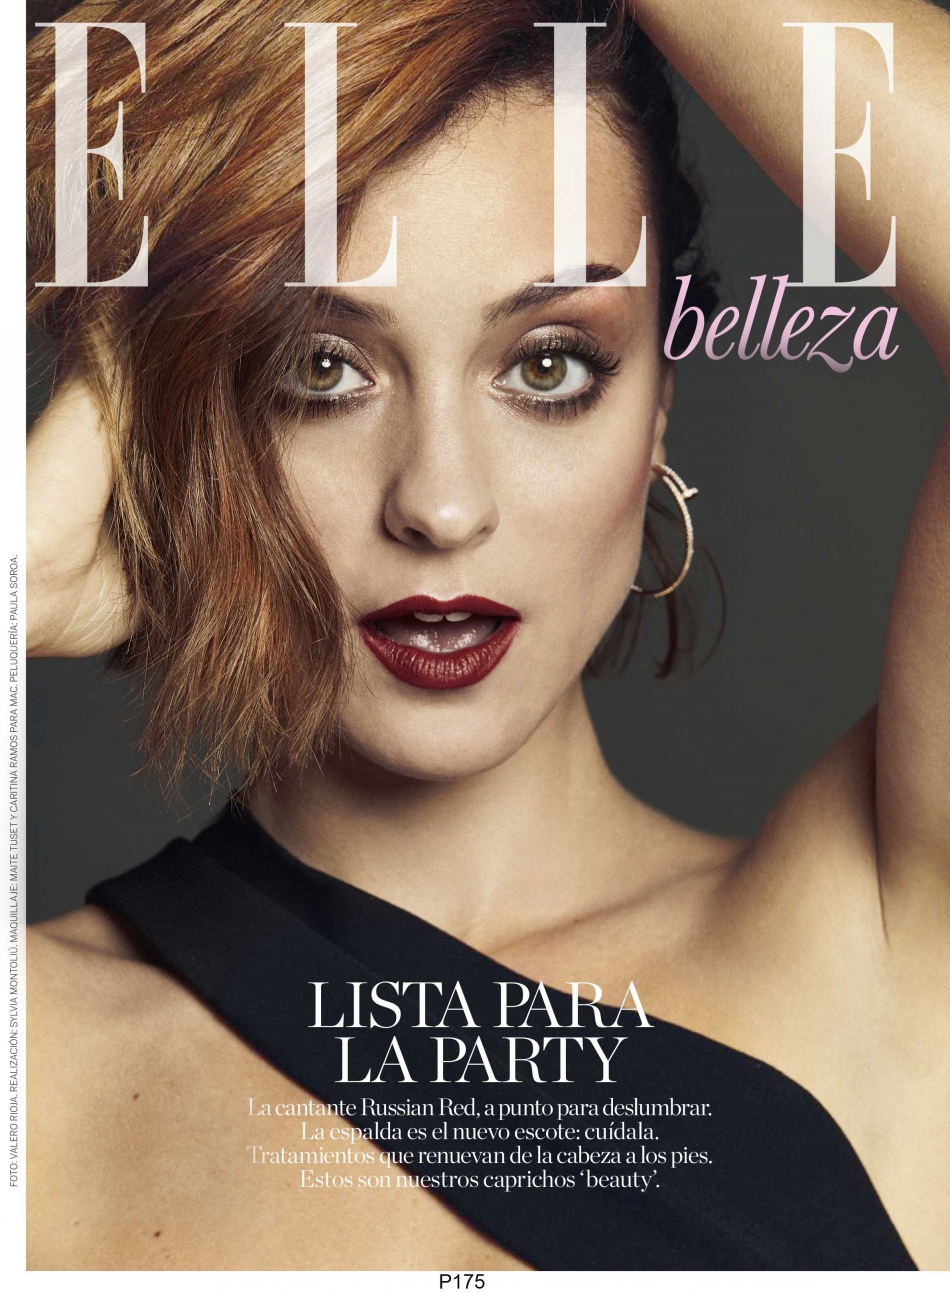 valero-rioja-photography-cover-elle-spain-russian-red-1